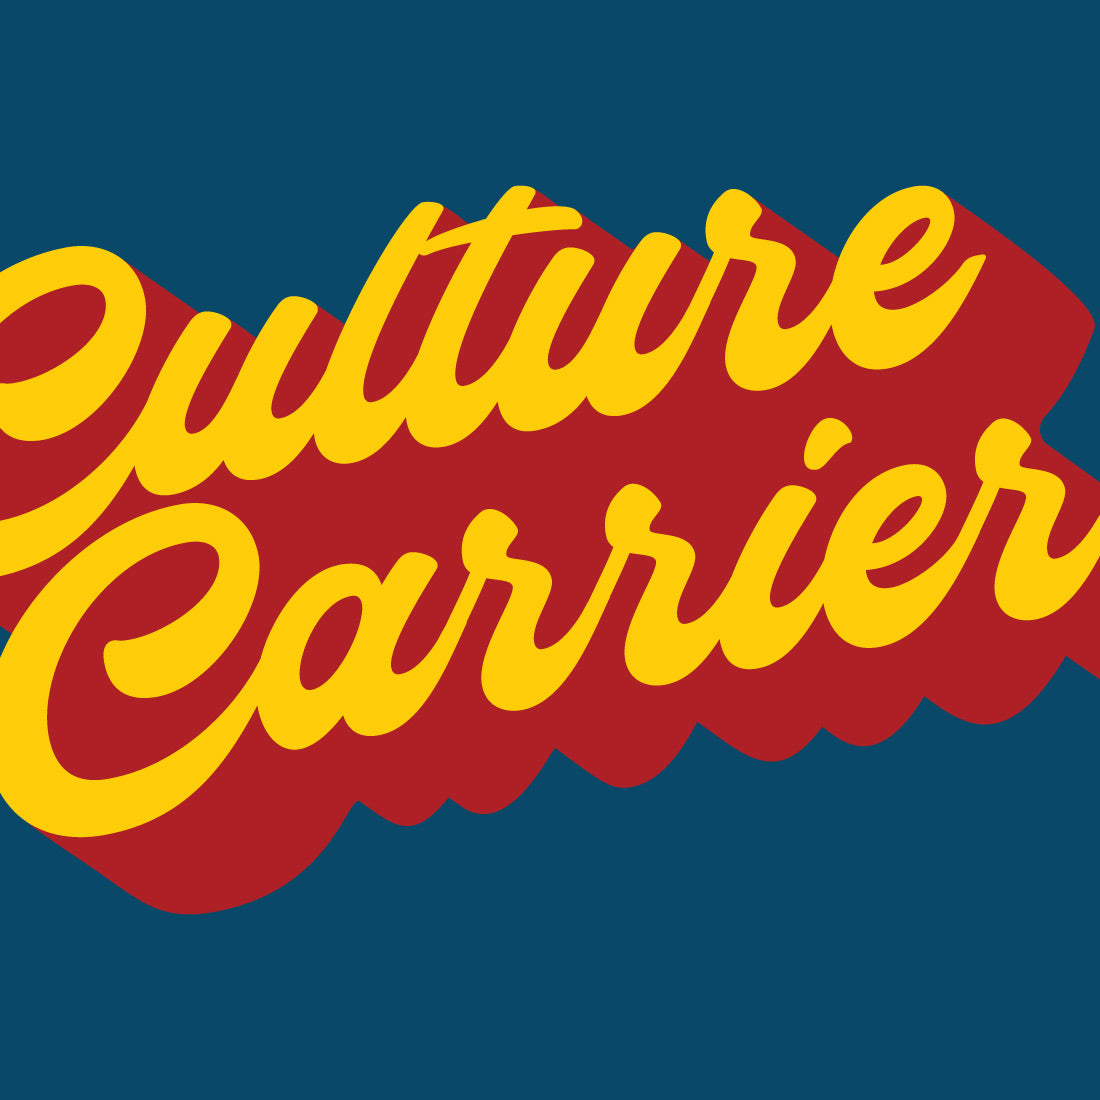 Culture Carrier stickers by David Bernie Indigenous Native American First Nations American Indian Aboriginal